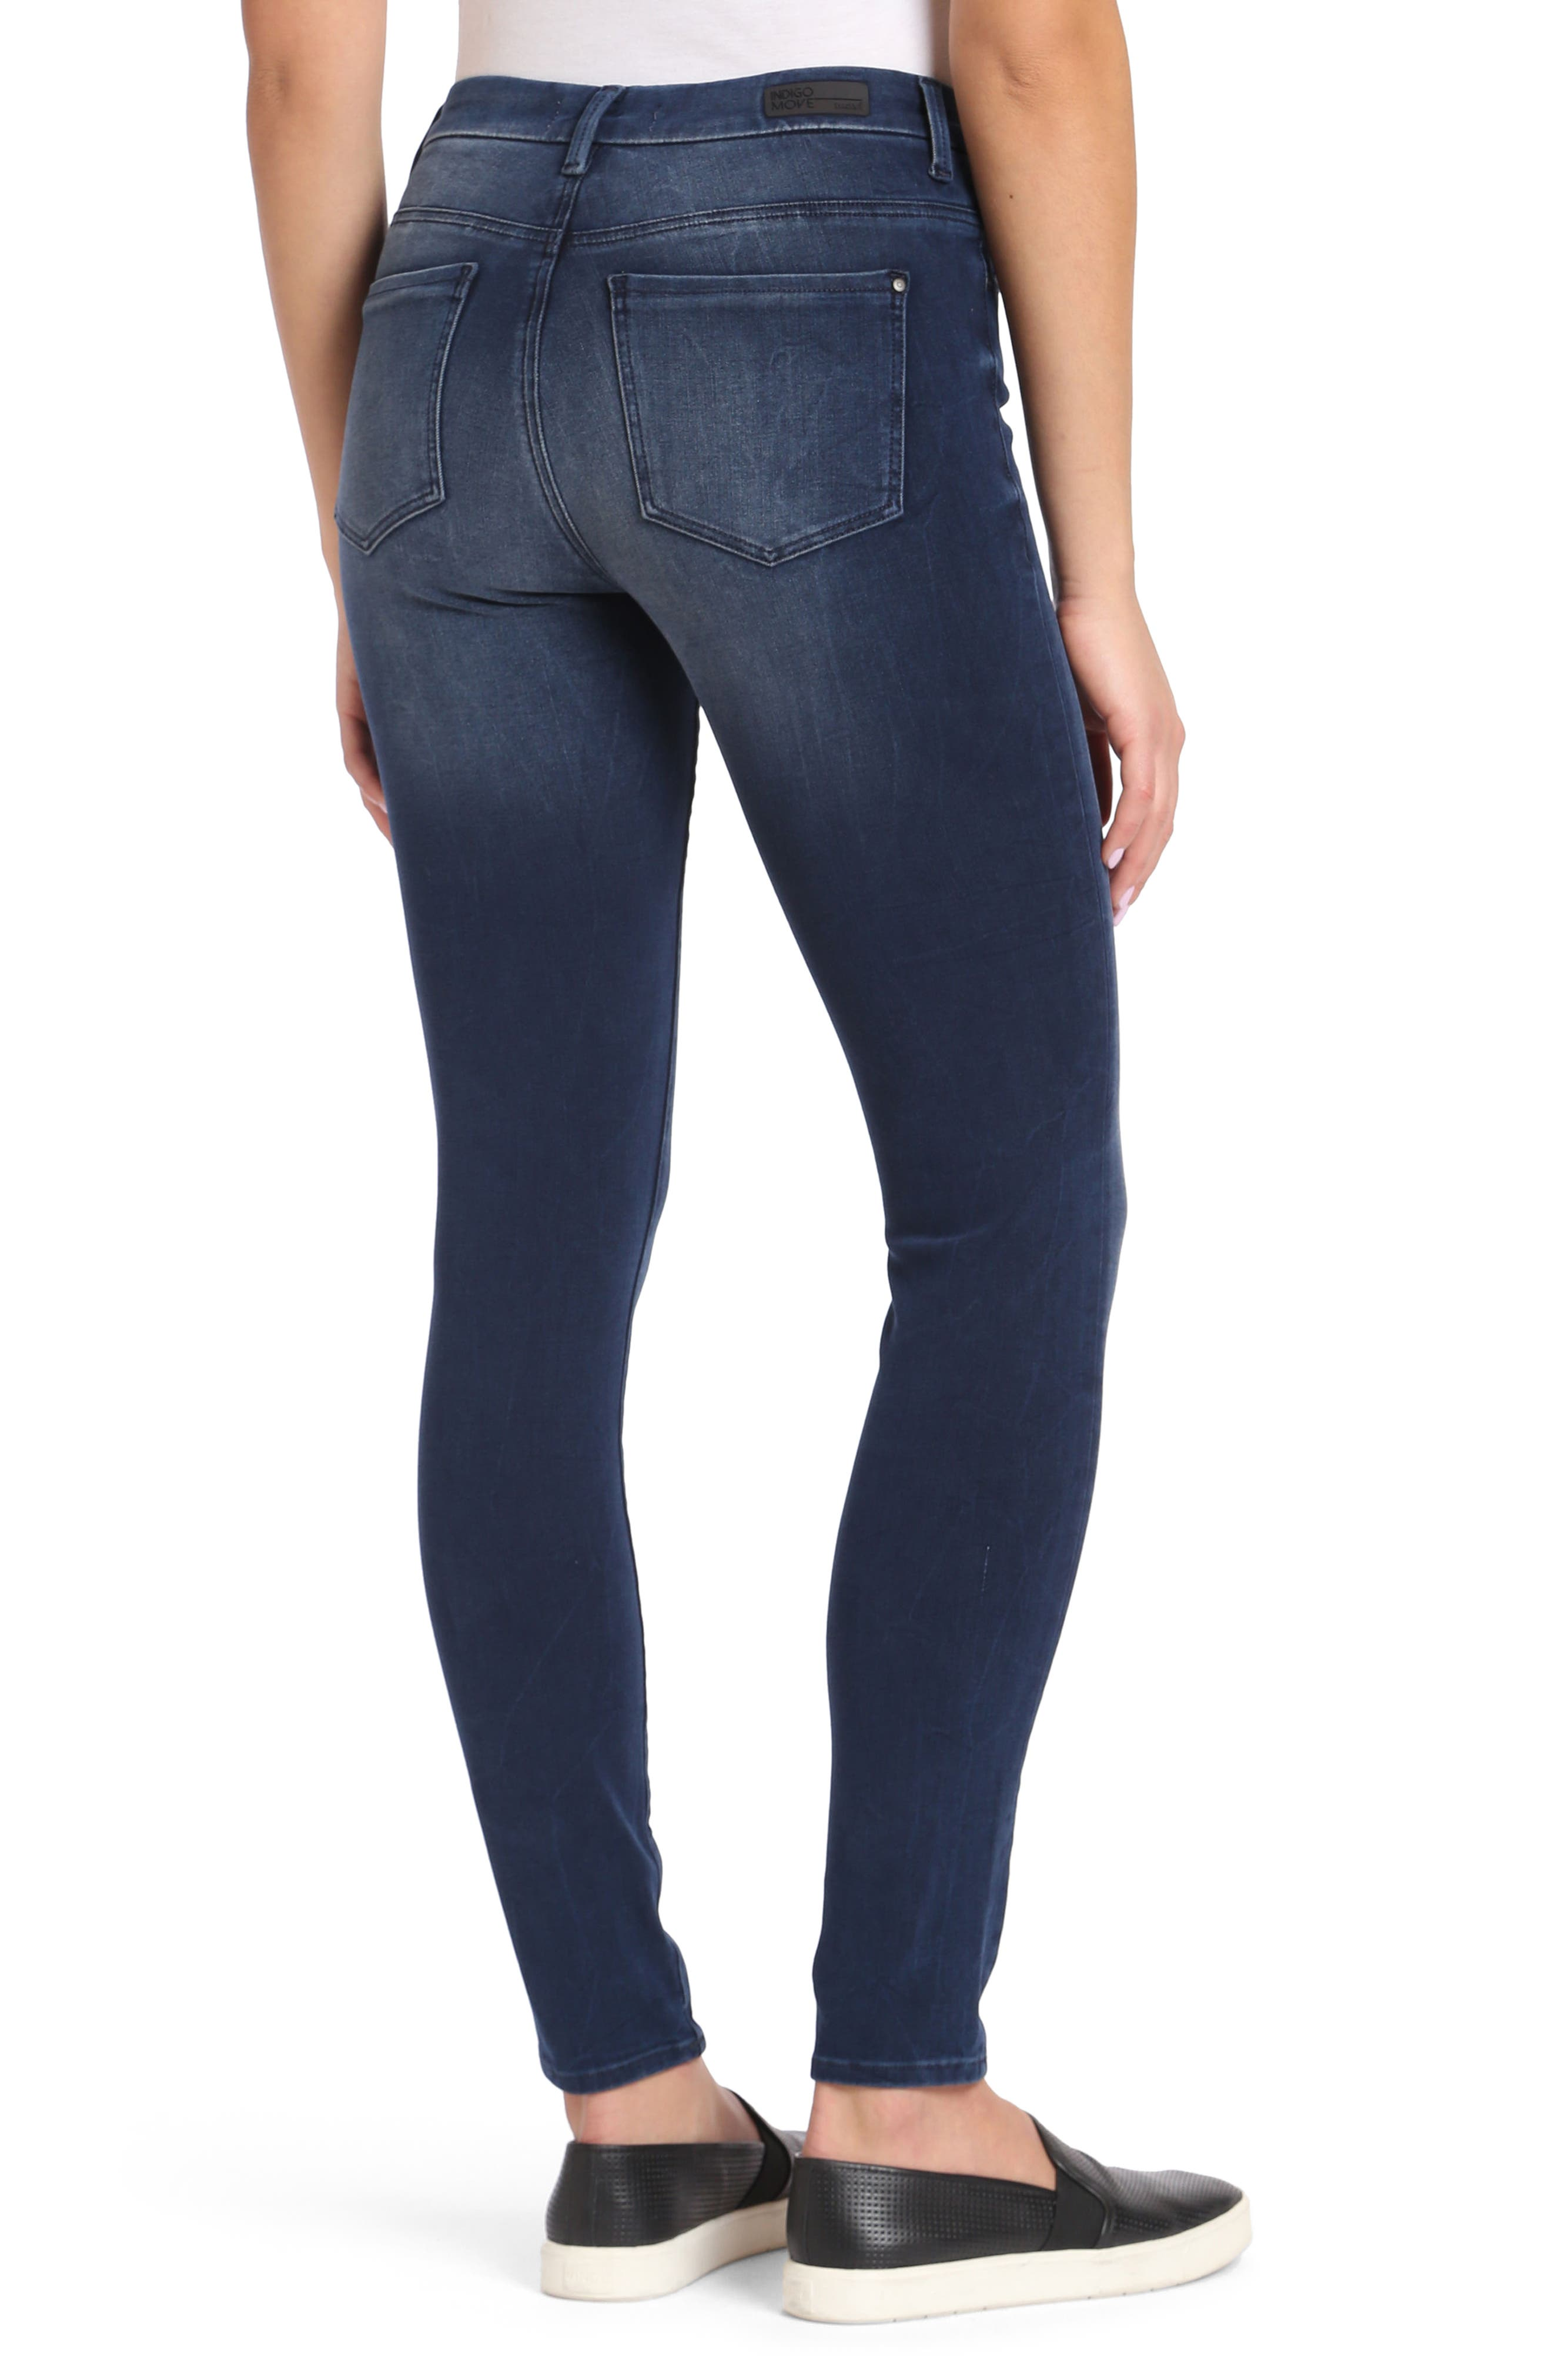 Alissa Stretch Slim High Rise Ankle Jeans,                             Alternate thumbnail 2, color,                             Ink Bi Stretch